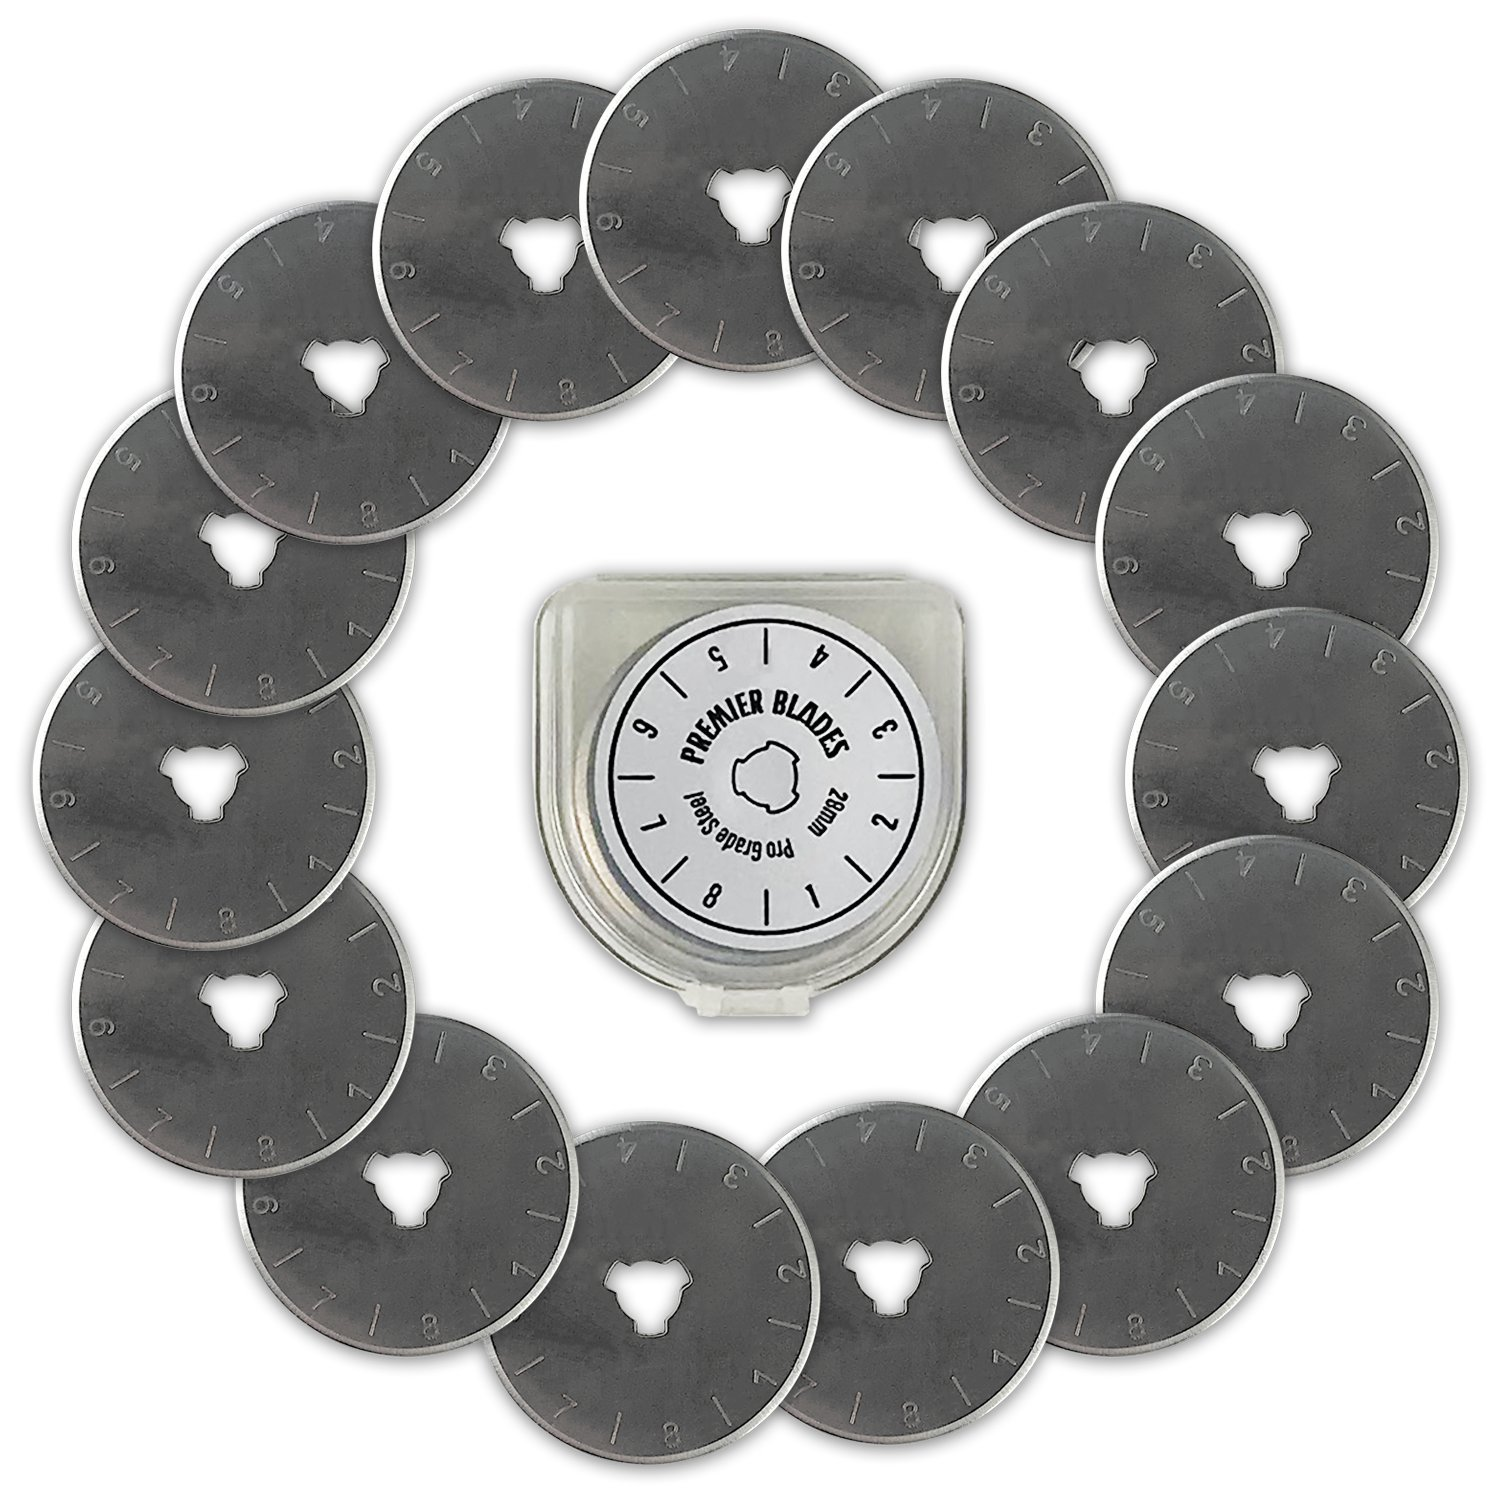 Premier Blades 28mm Rotary Cutter Blades – 15 Pack